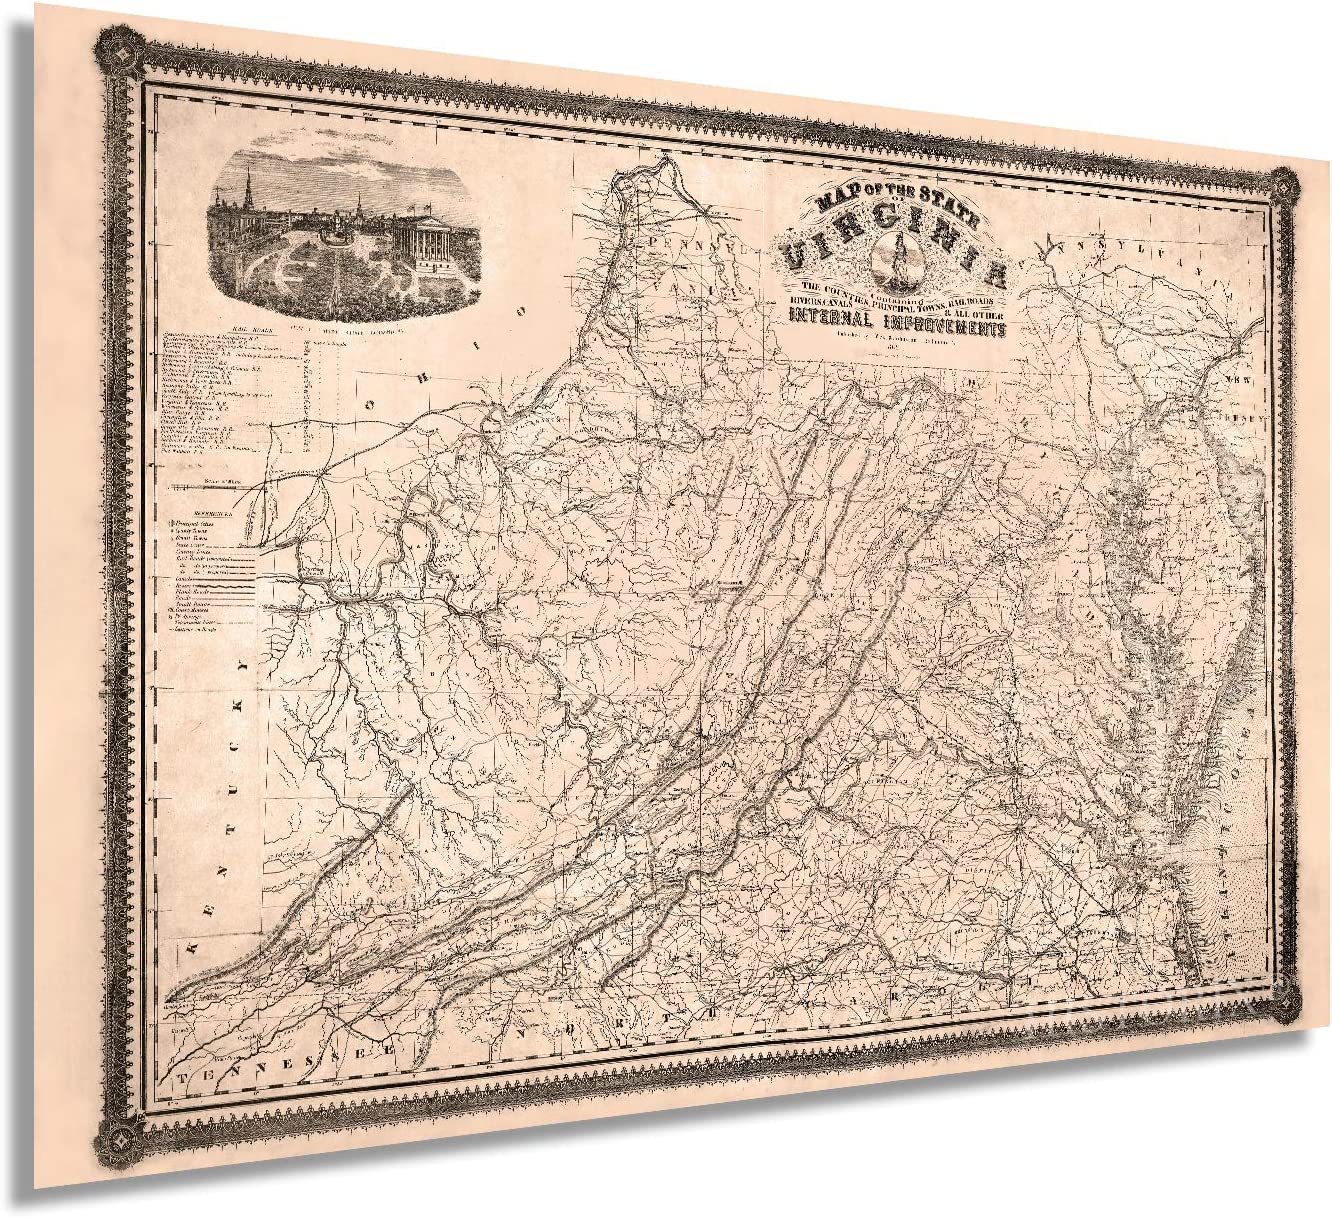 Historix Vintage 1862 Map of Virginia - 24x36 Inch Vintage Wall Art - Map of State of Virginia During the Civil War - State Map of Virginia - Virginia Wall Map - Virginia Decor (2 sizes)